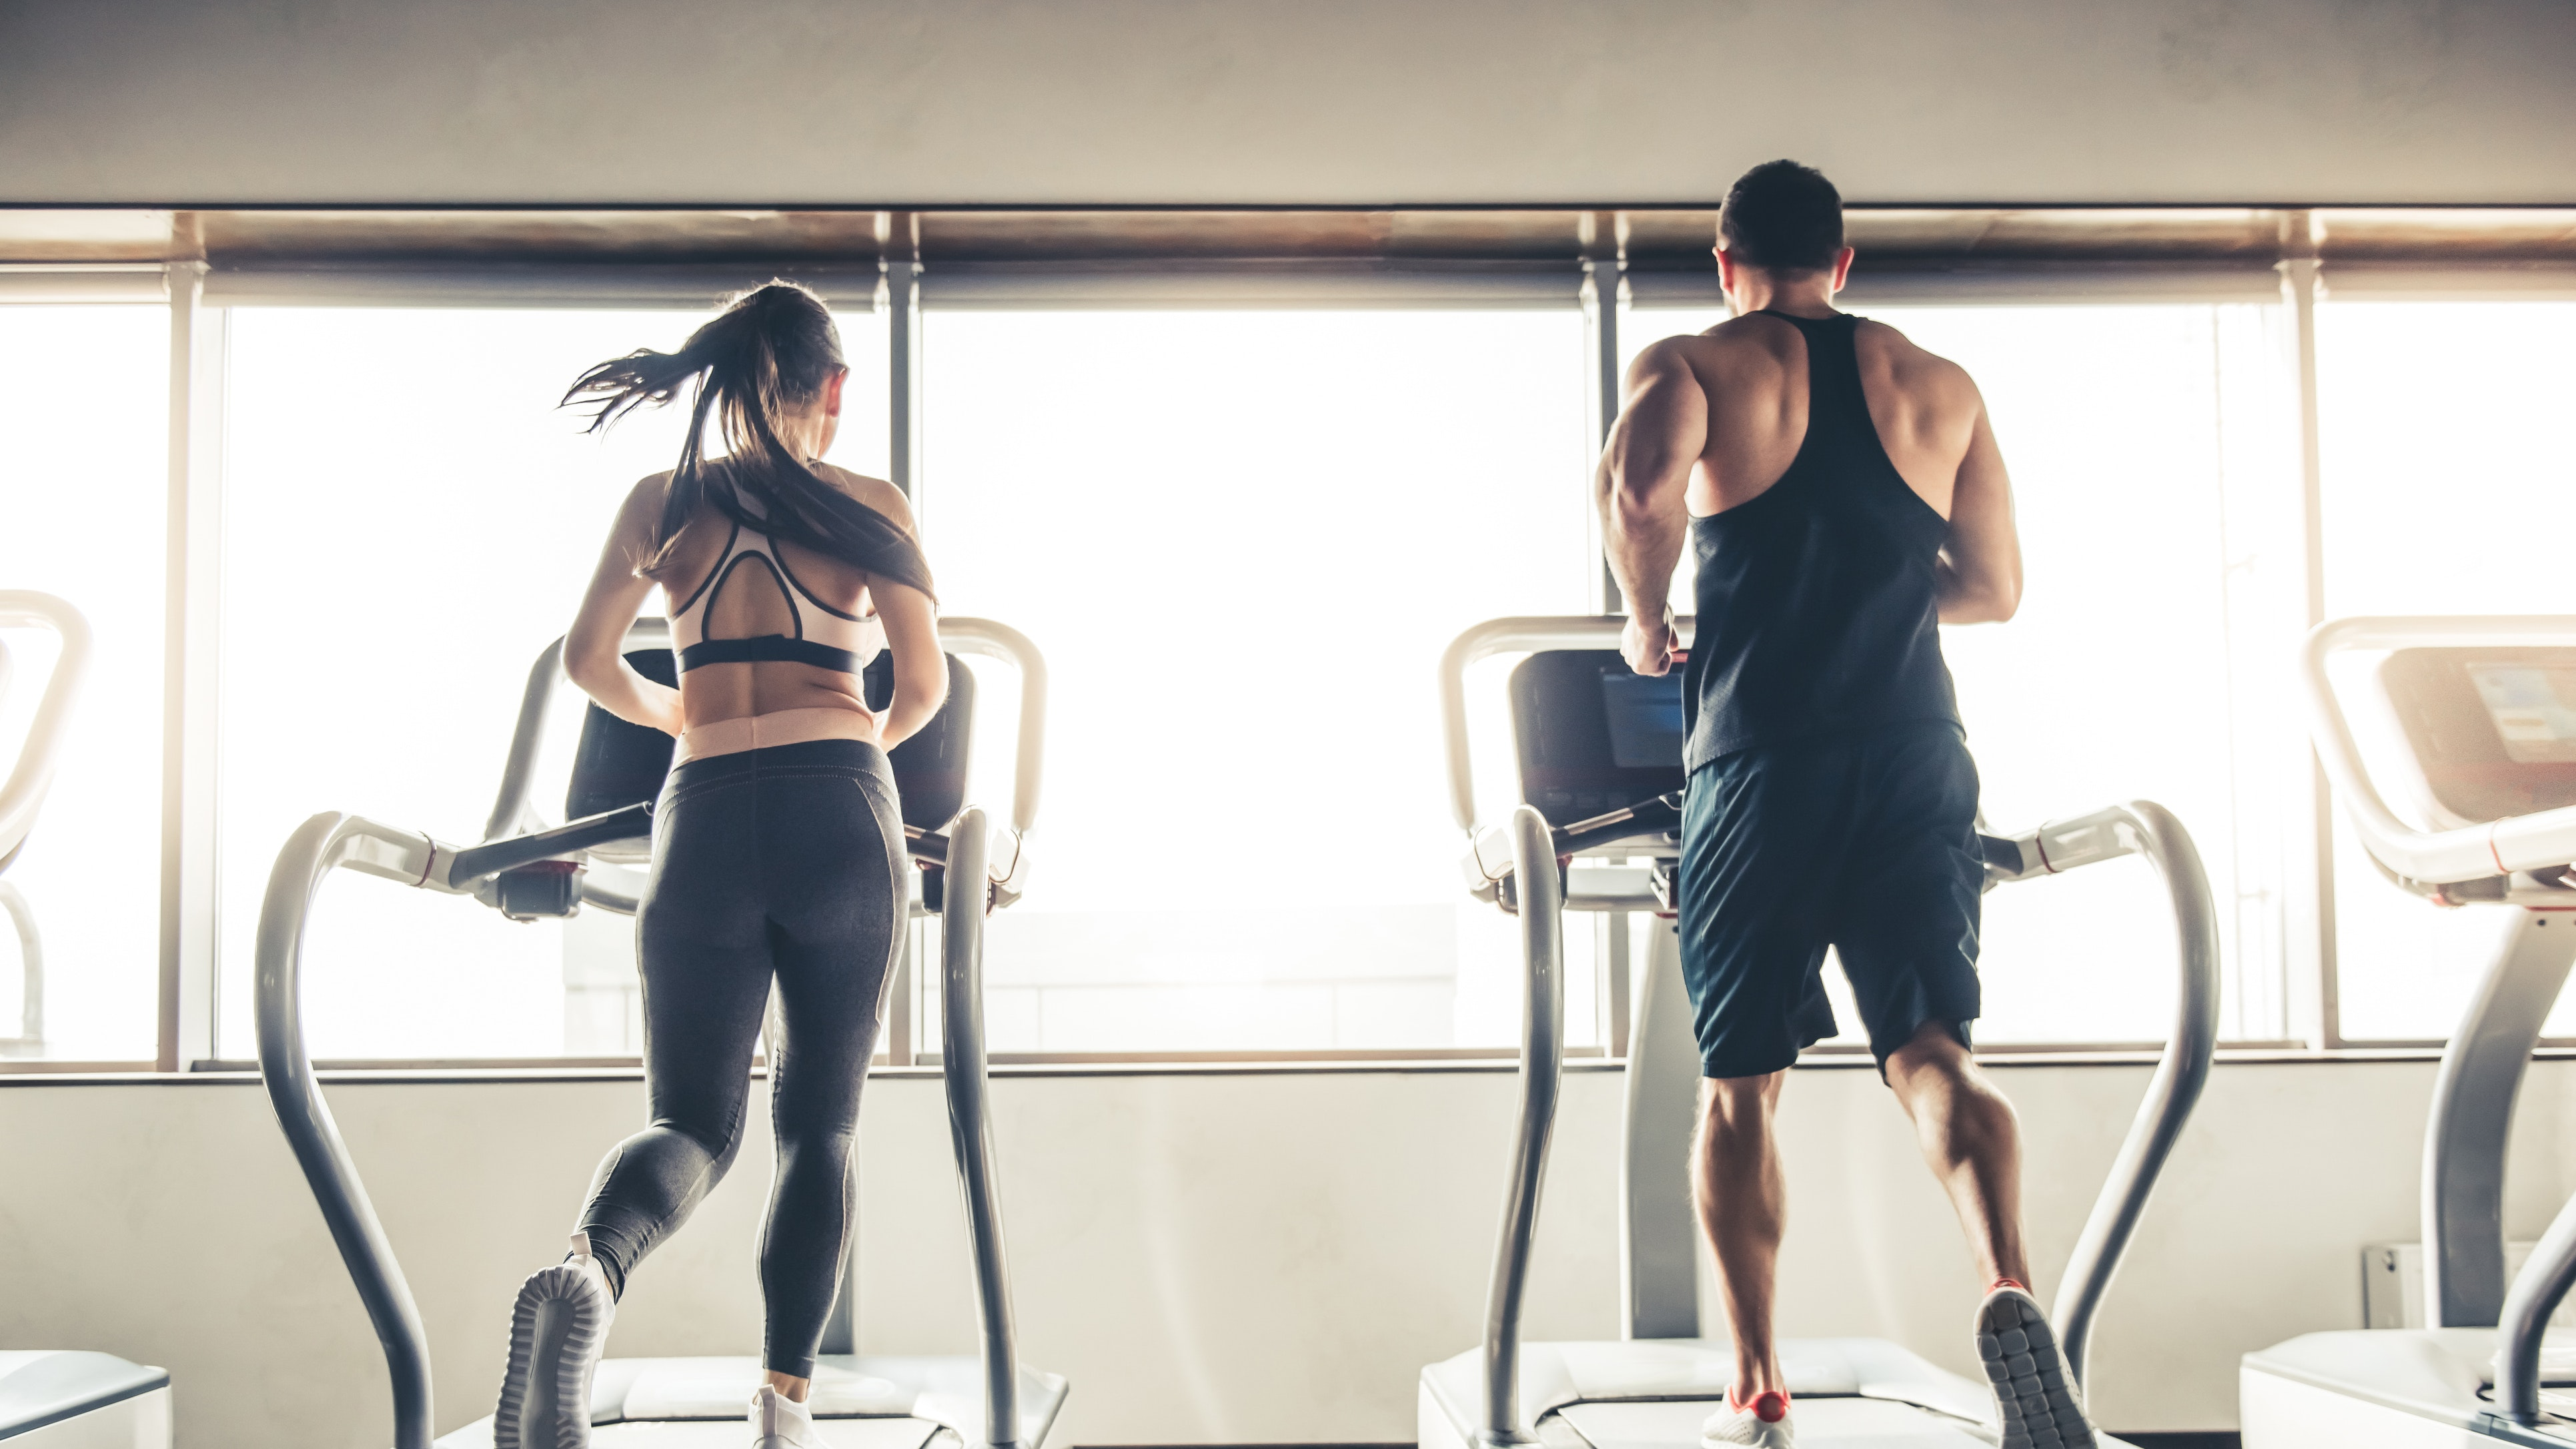 Verify The Experience Properly Before Hiring a Personal Training Expert